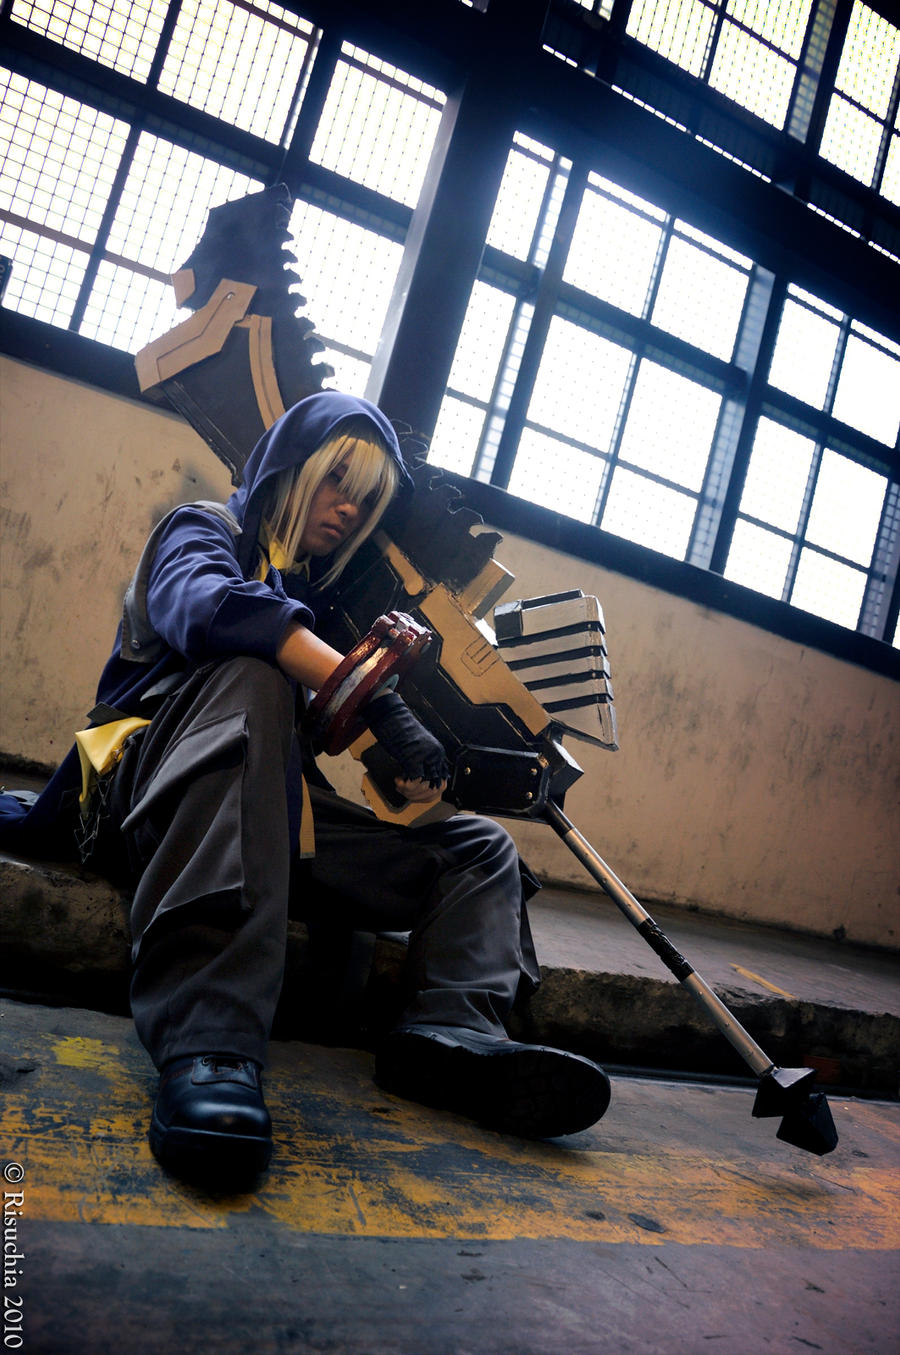 Cosplay-player 2 - Page 2 God_eater___soma_by_shinjisg87-d3388vr